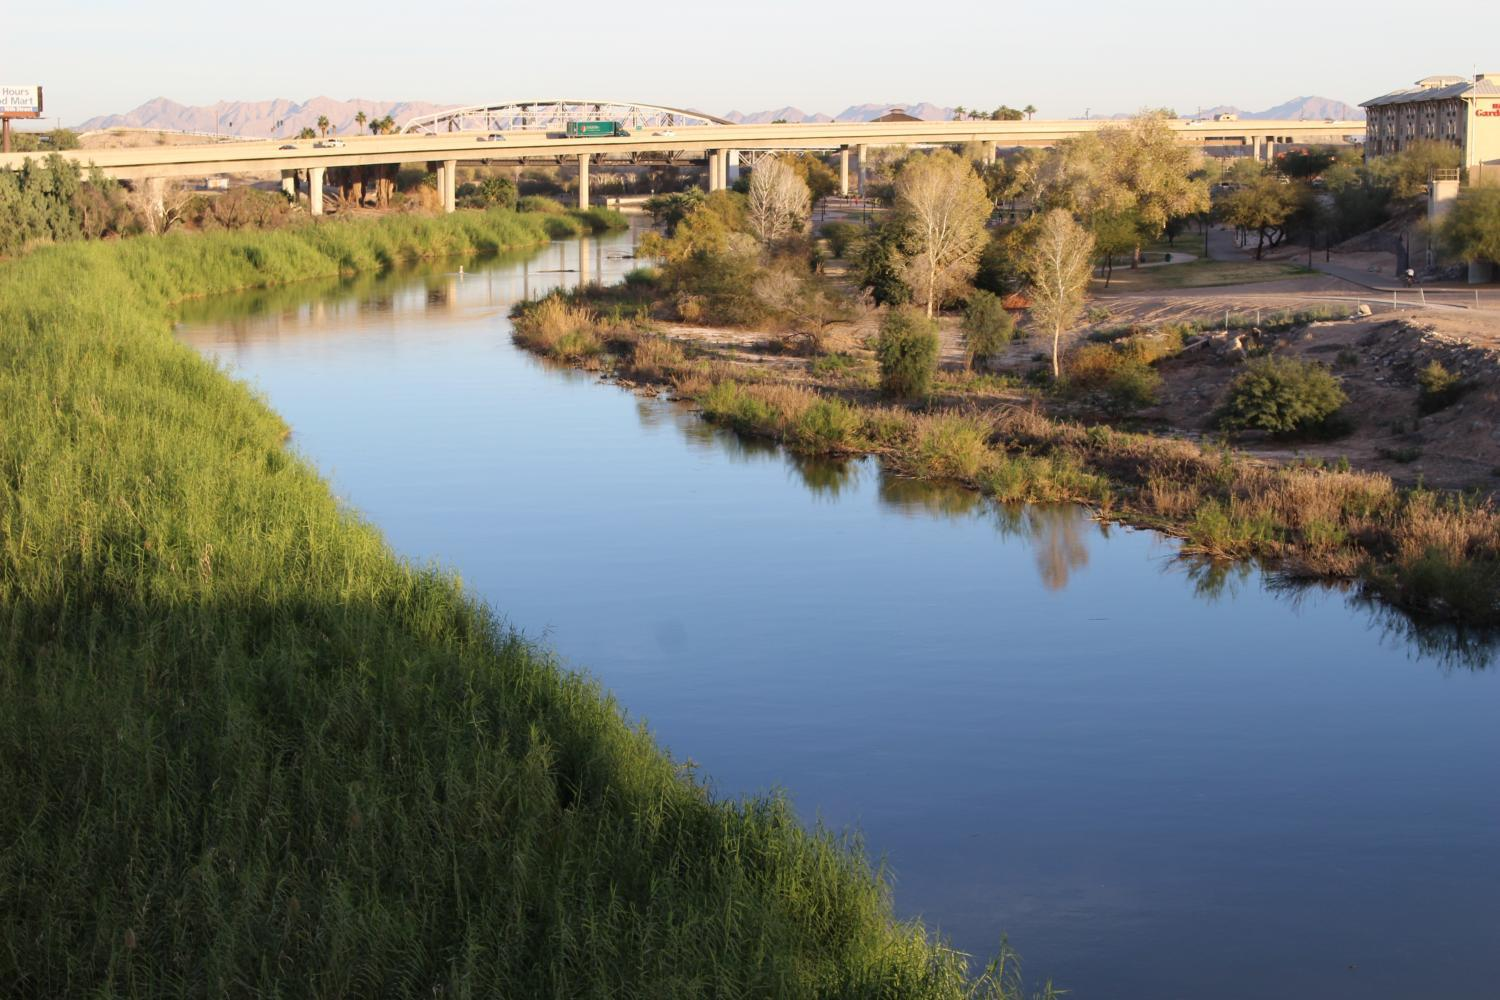 Colorado River in Yuma